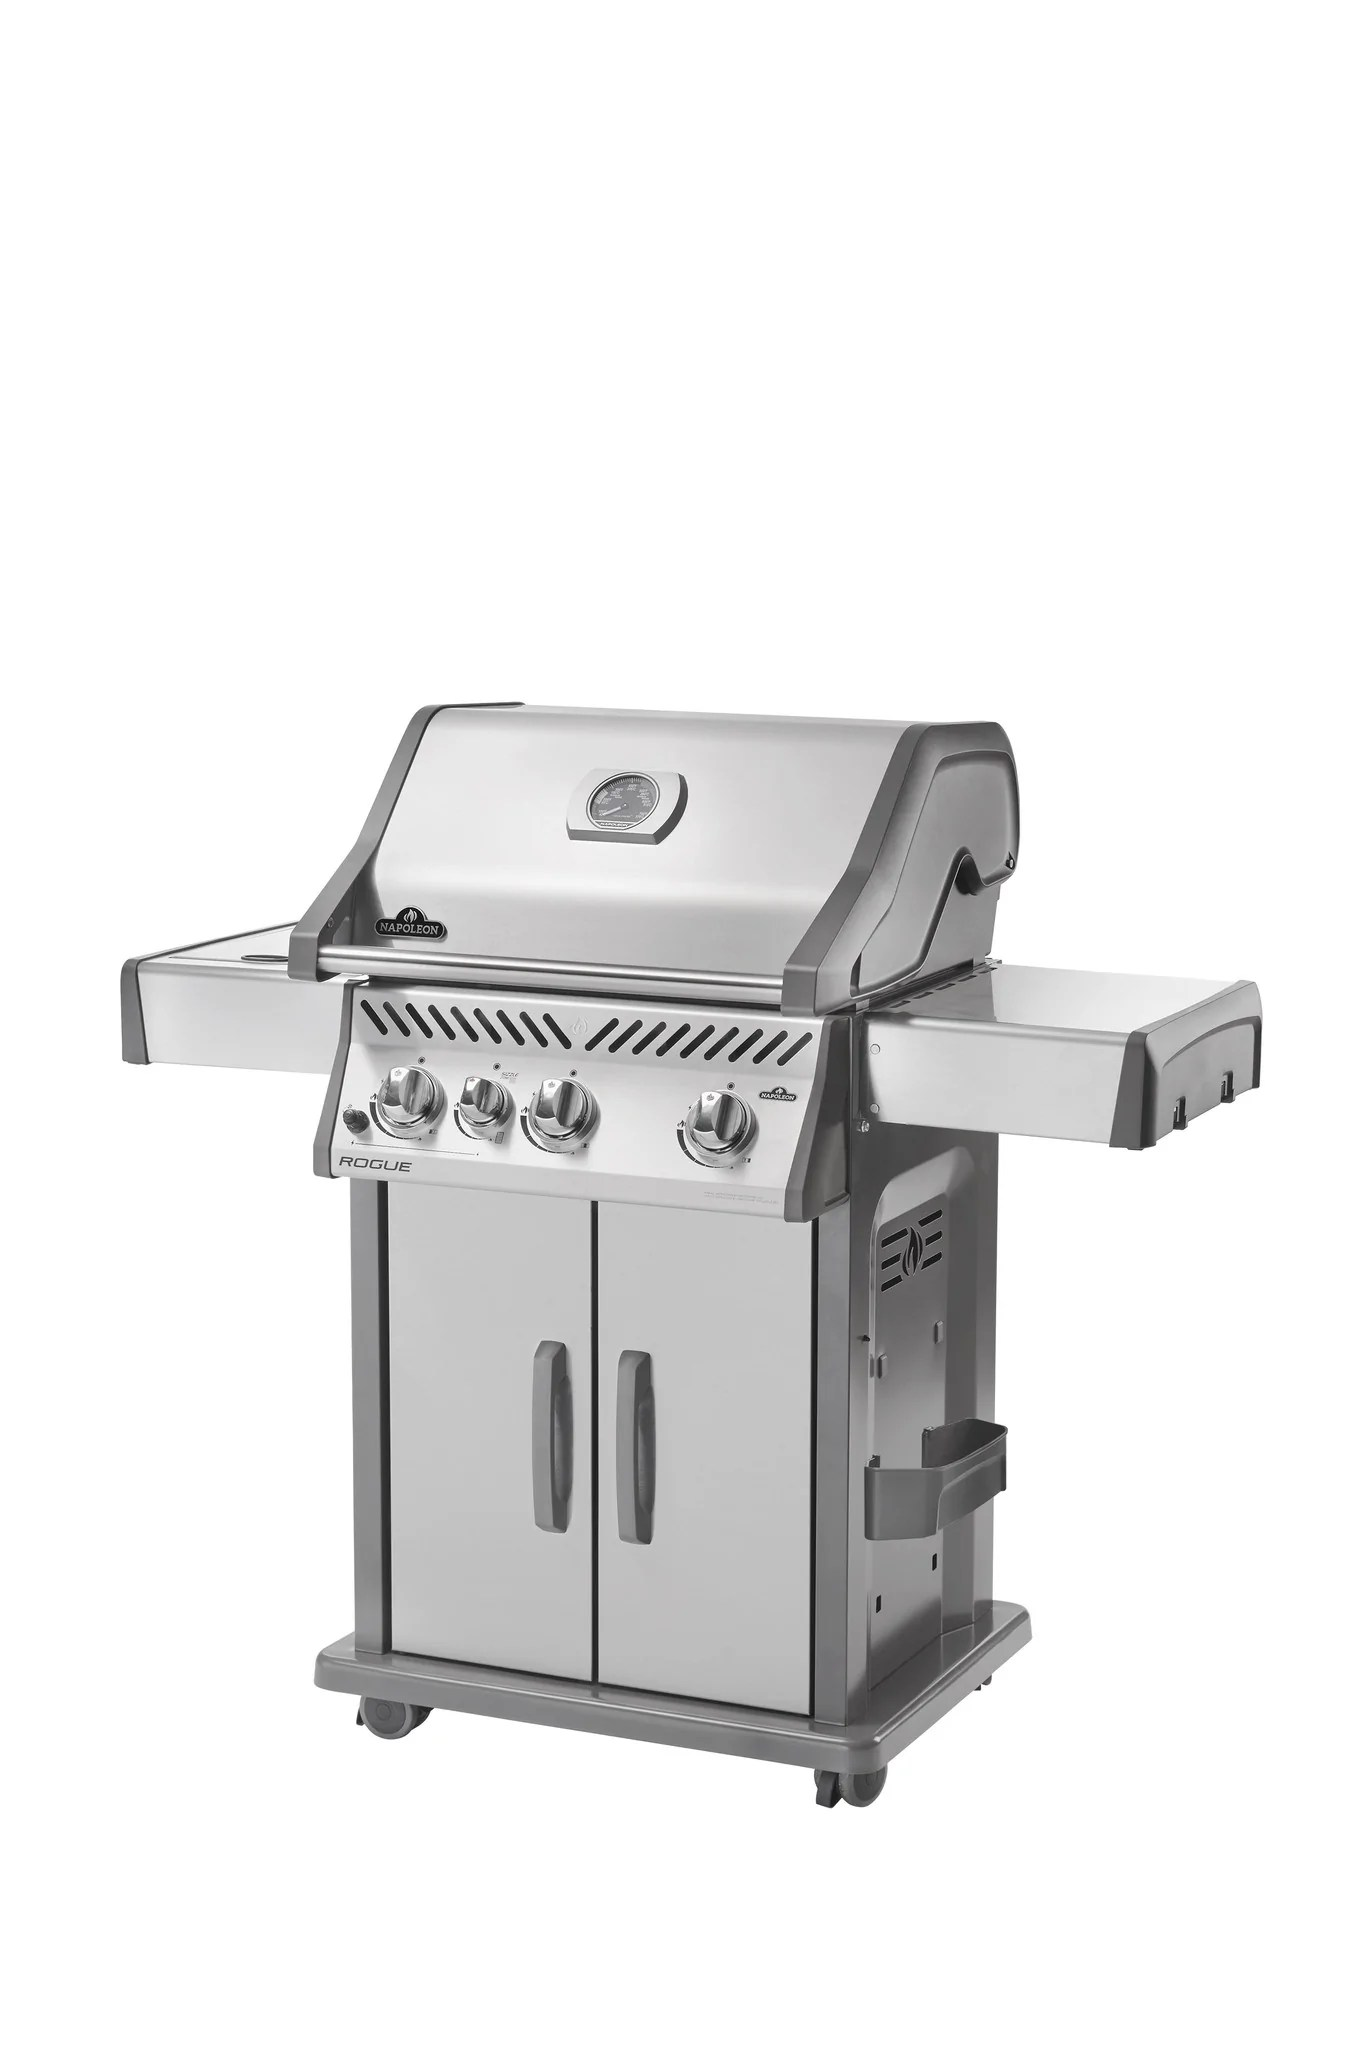 Napoleon Grill Sizzle Zone Napoleon Rogue 425 Gas Grill With Infrared Side Burner Leisure Depot